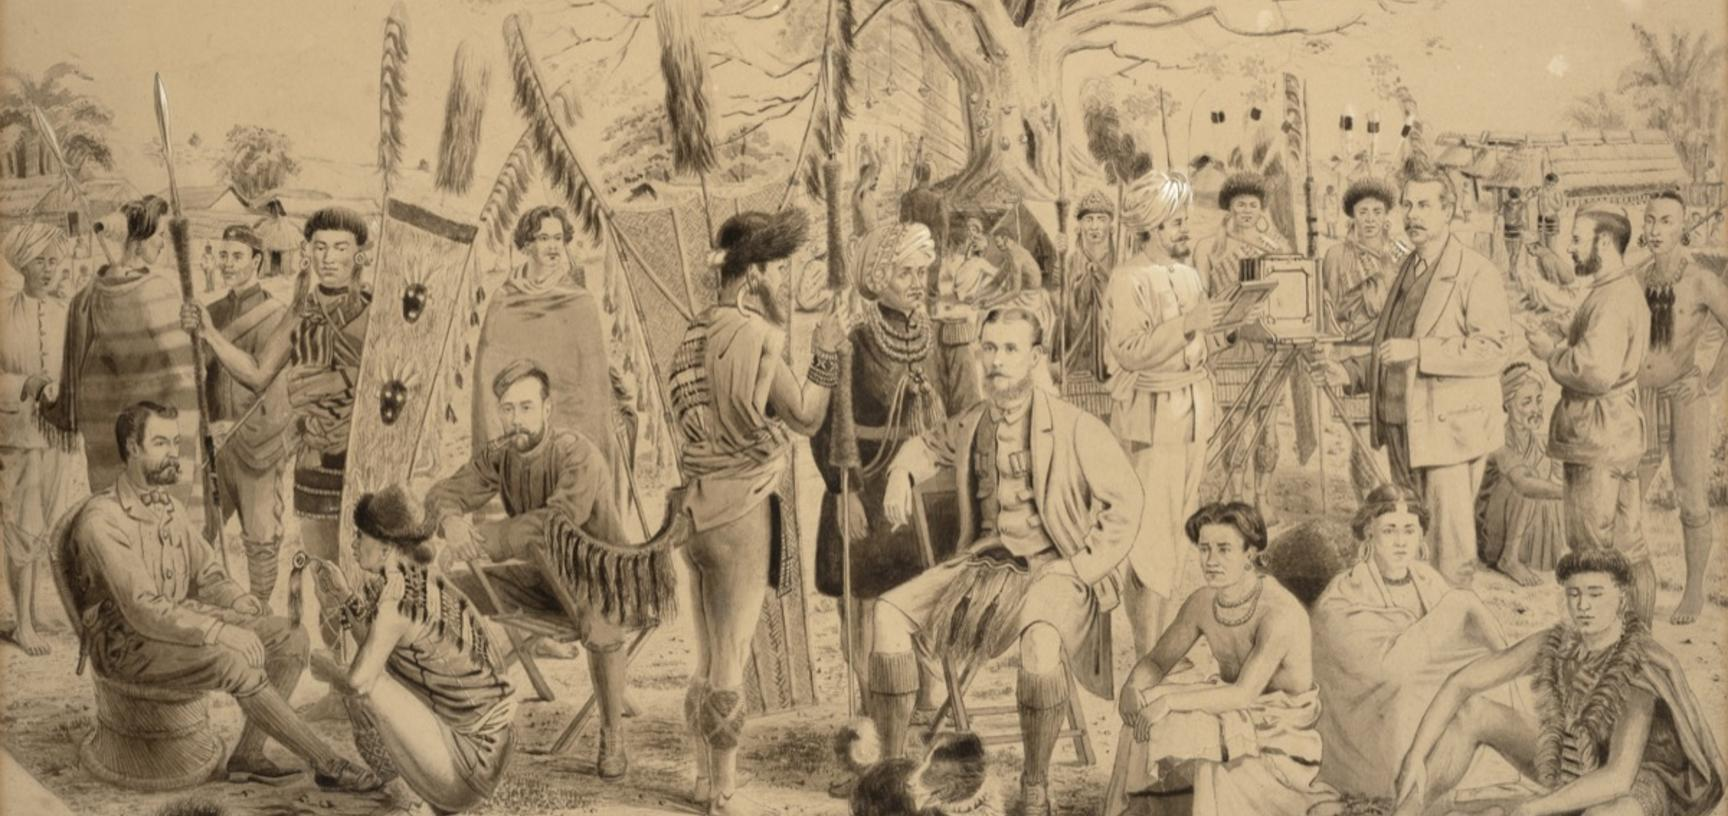 'Submission of Naga Chiefs' (handwritten caption or title). This original painting, from which various copies derive, shows at its centre Captain John Butler, the British administrator in charge of the Naga Hills District.